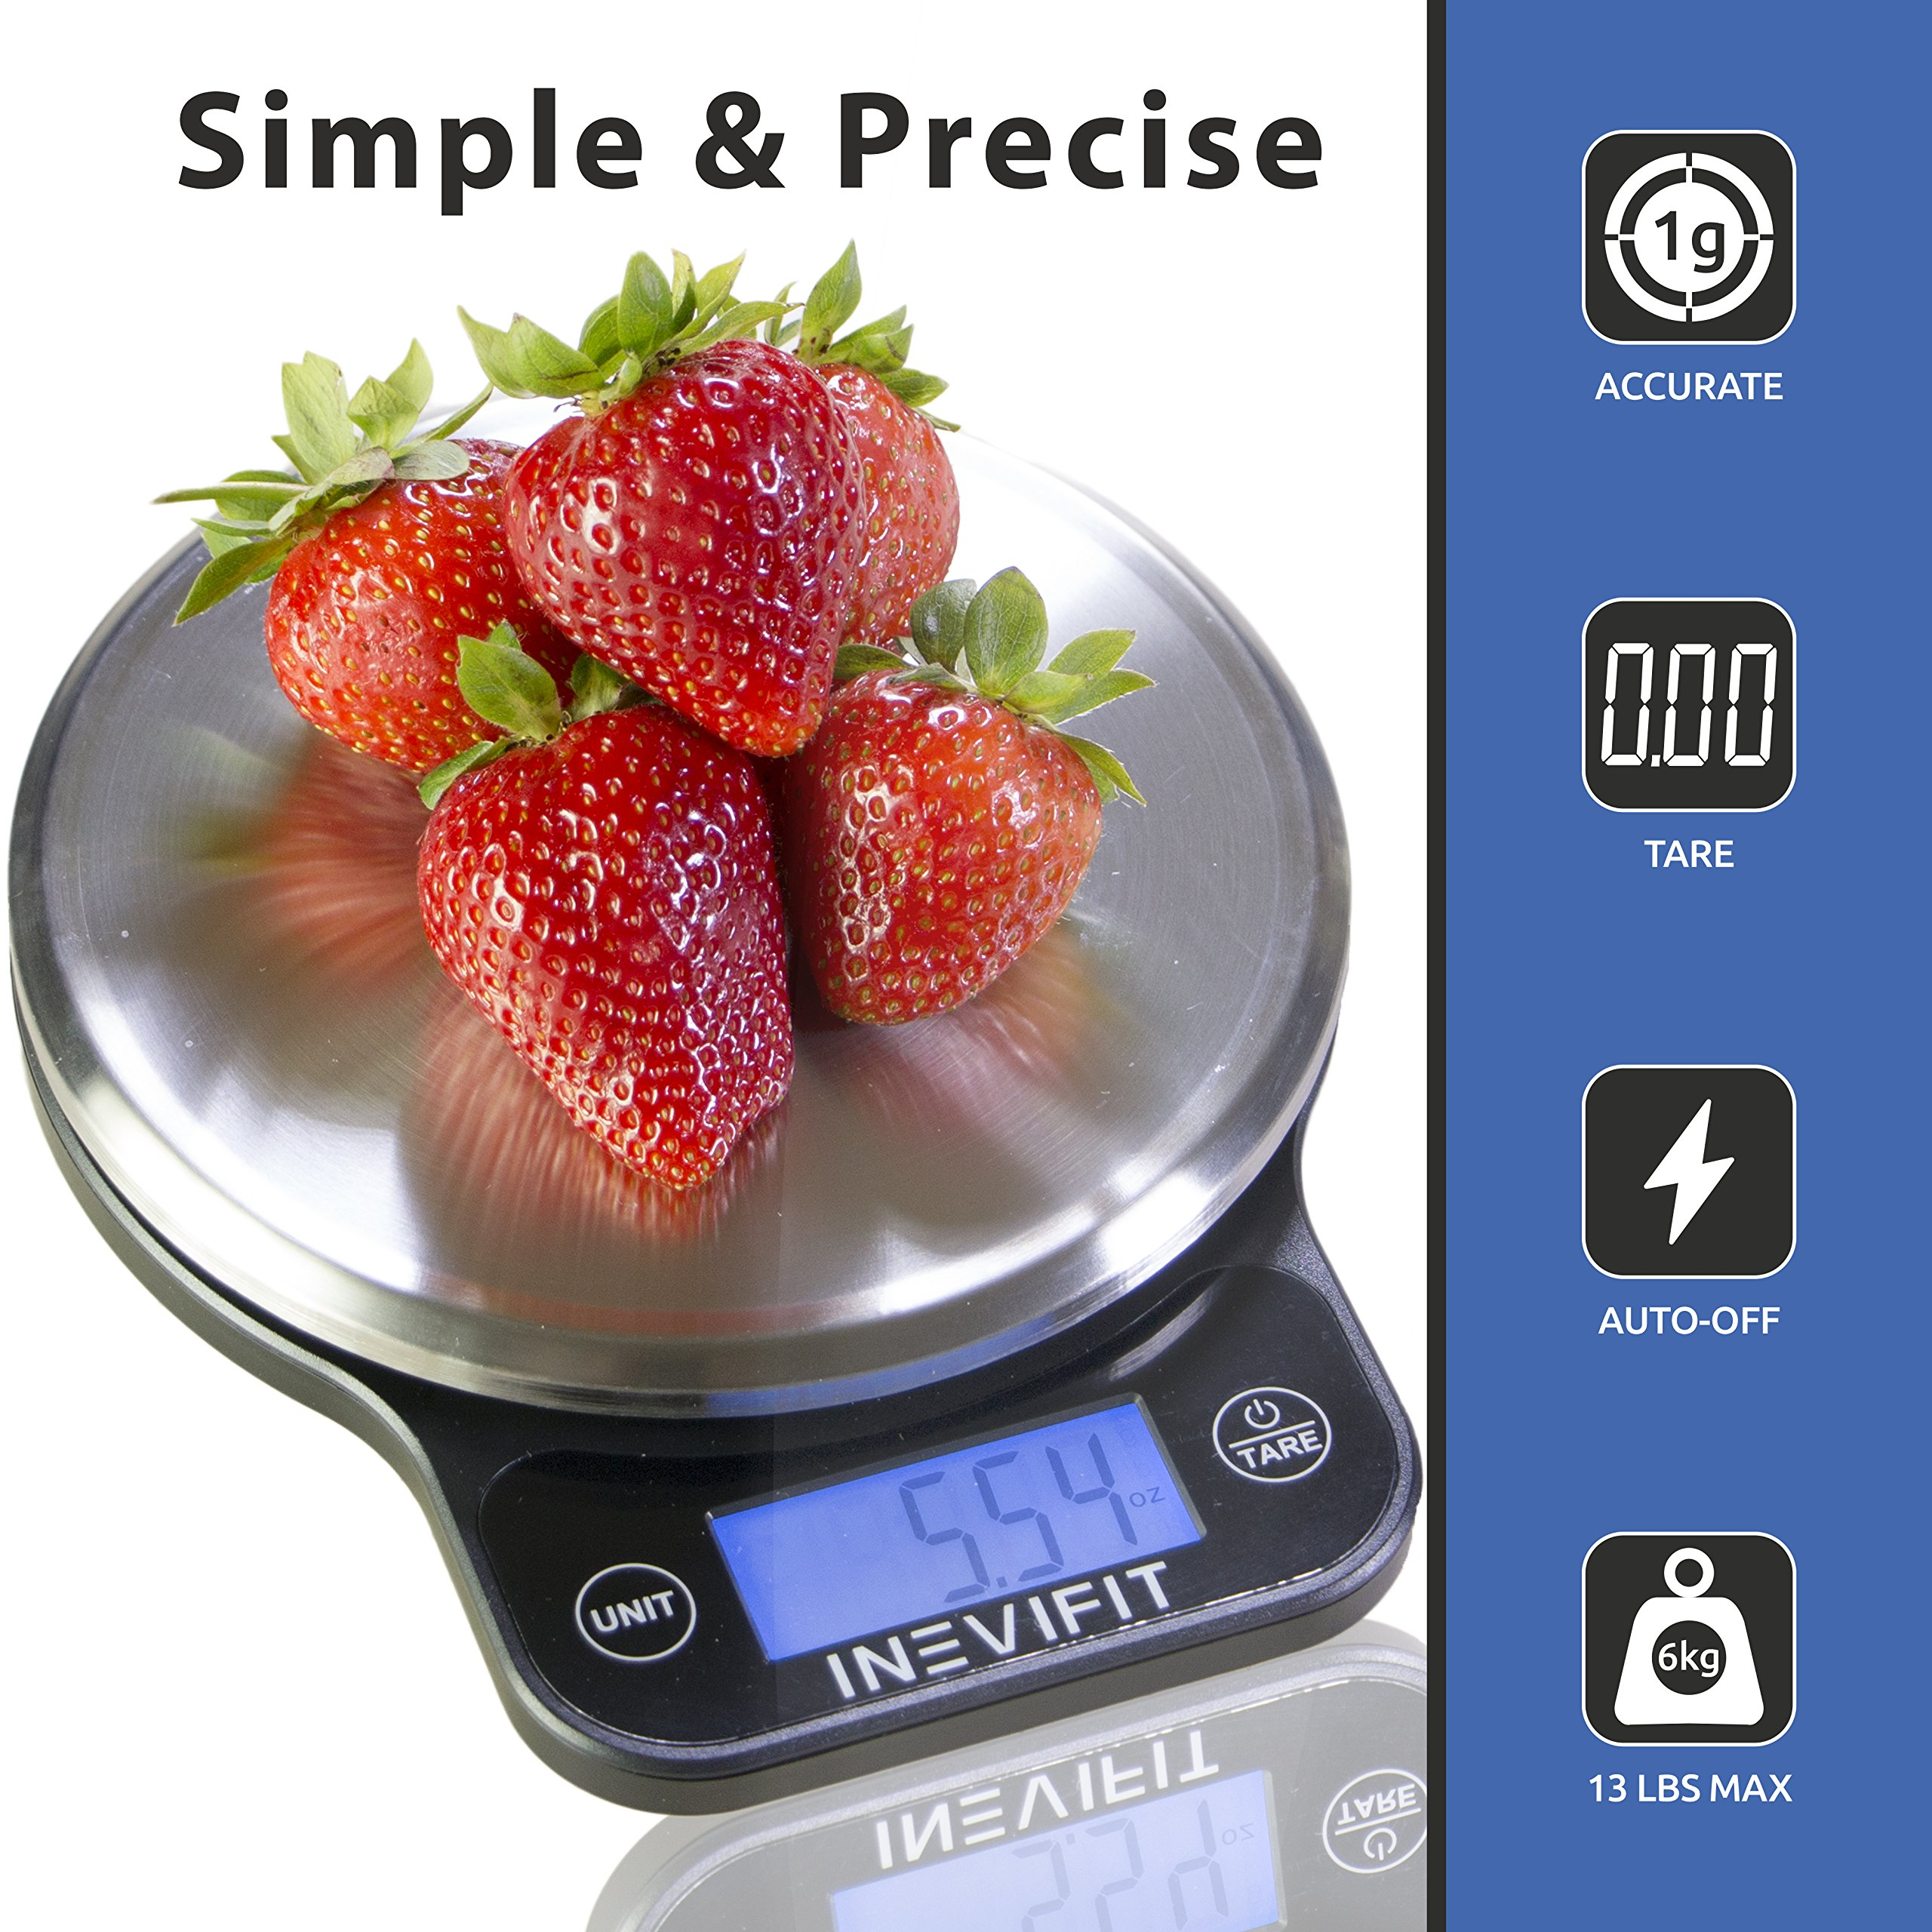 Inevifit Digital Kitchen Scale Highly Accurate